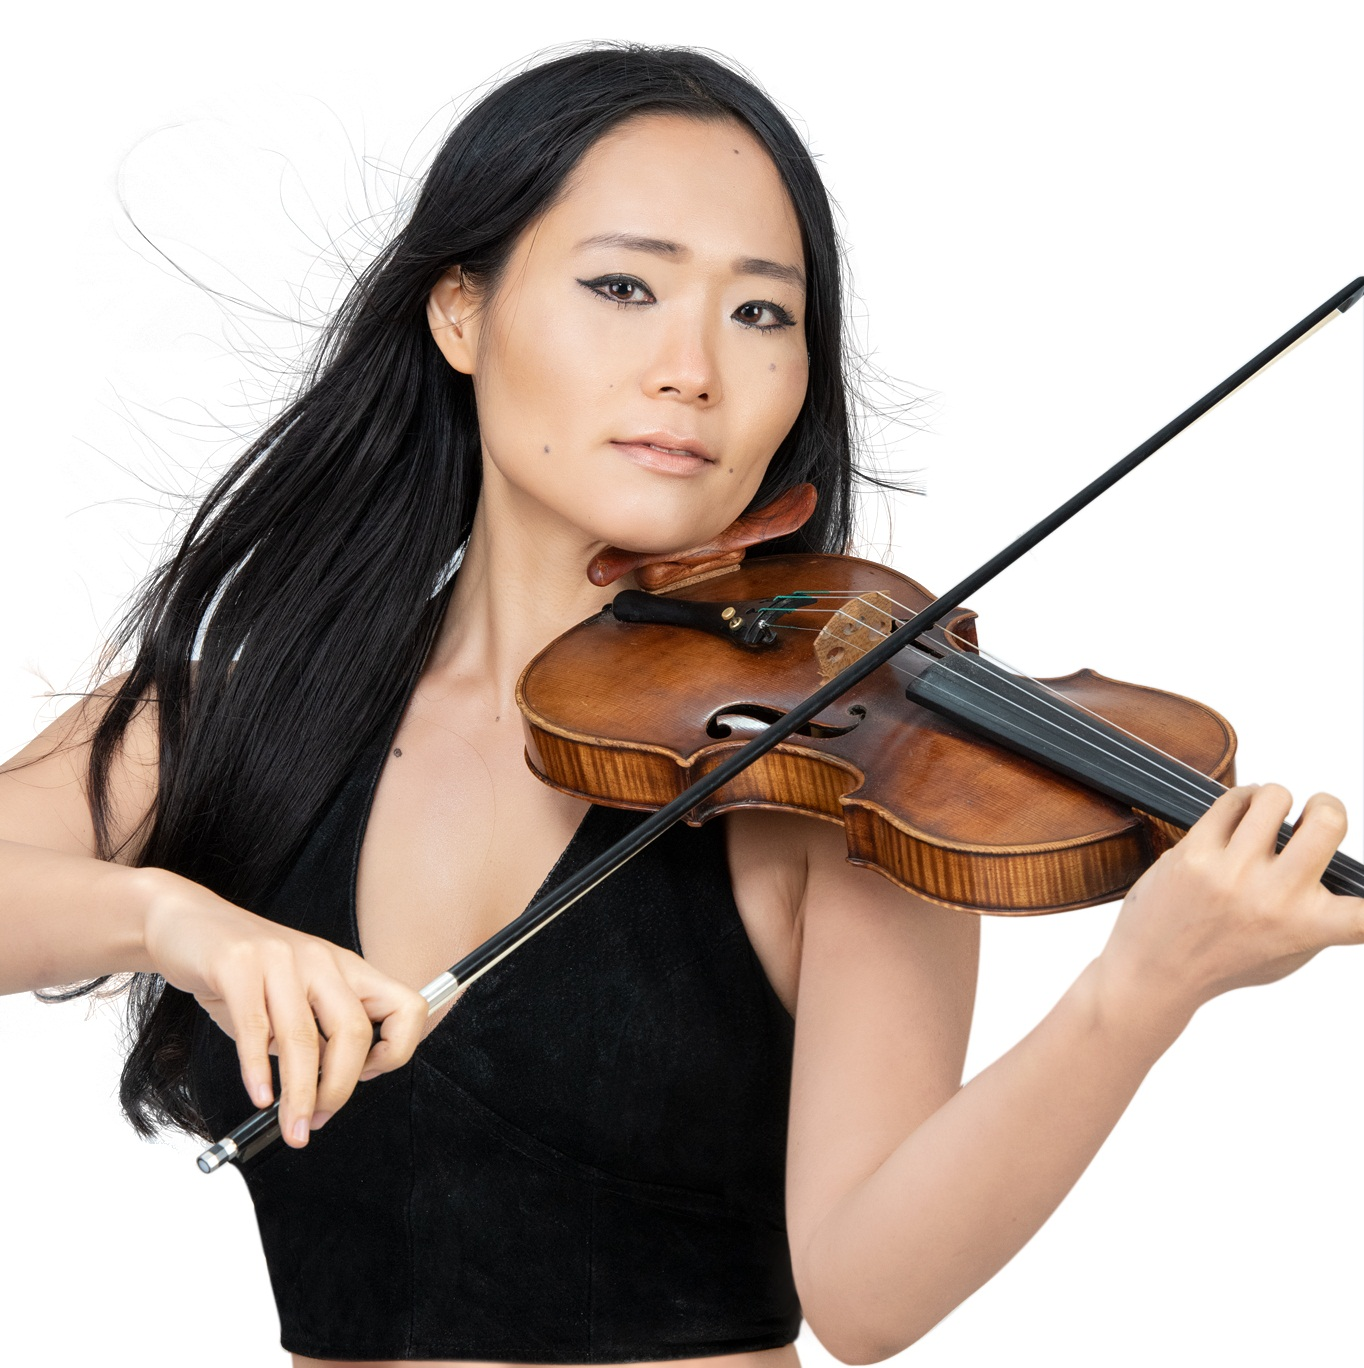 About - Megumi saruhashi is a border-crossing violinist and composer. A native of Japan and currently resides in Brooklyn. Megumi uses the violin to give her audience a chance to open their portal one ear at a time for a greater consciousness. Read More